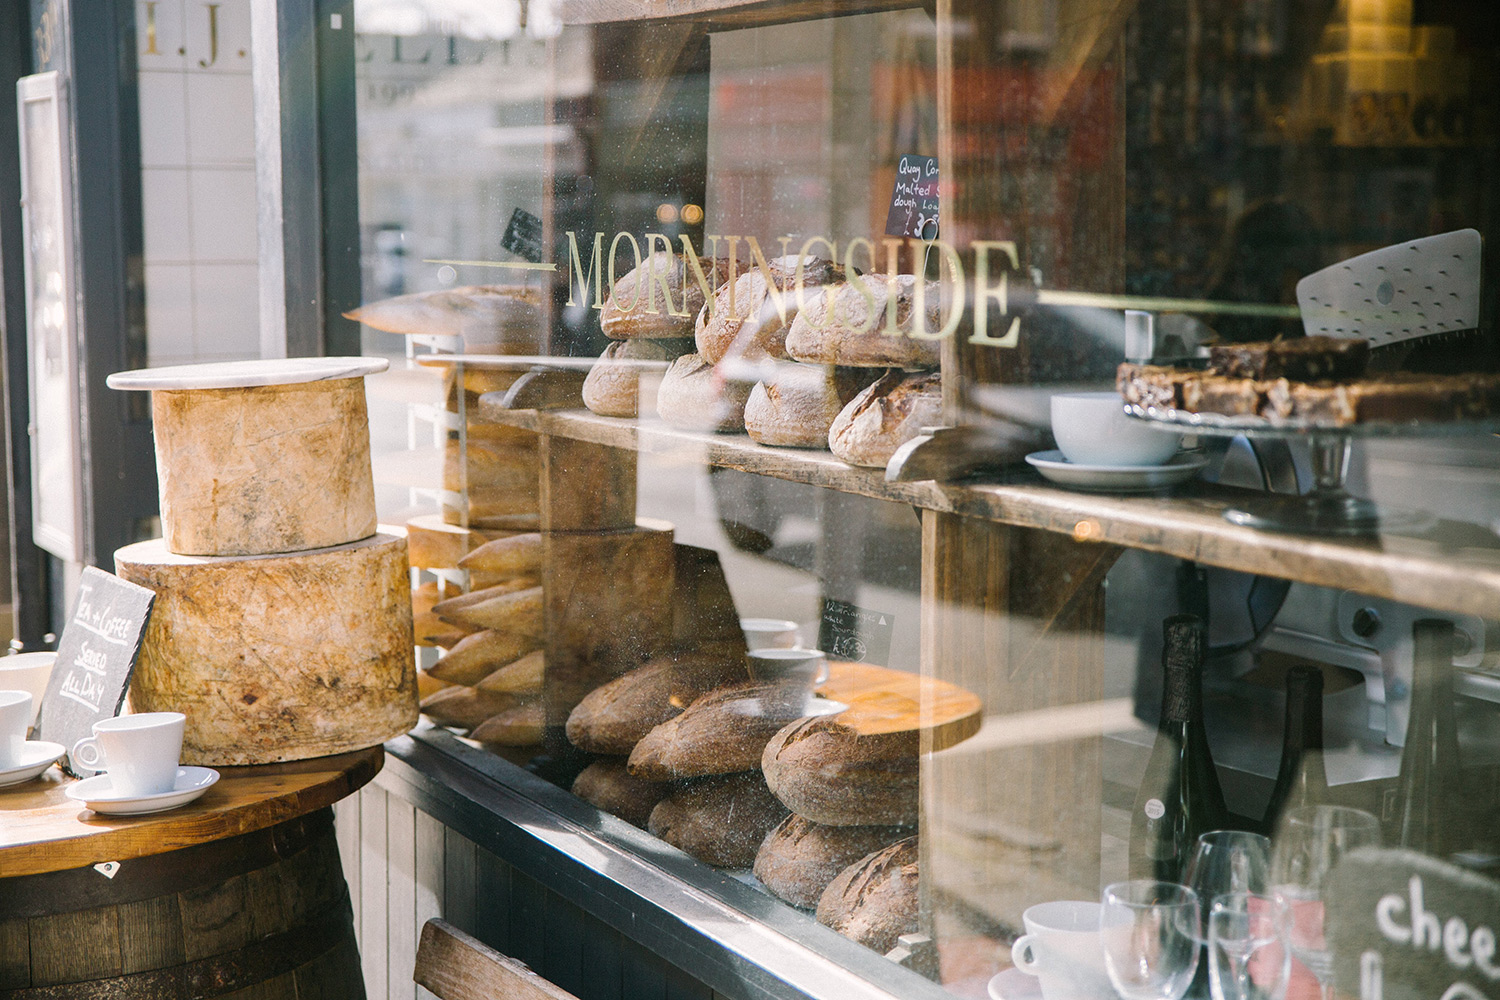 A-Wee-Taste-Of-Edinburgh-Walking-Food-Tour-Morningside-Bruntsfield-Food-7.jpg